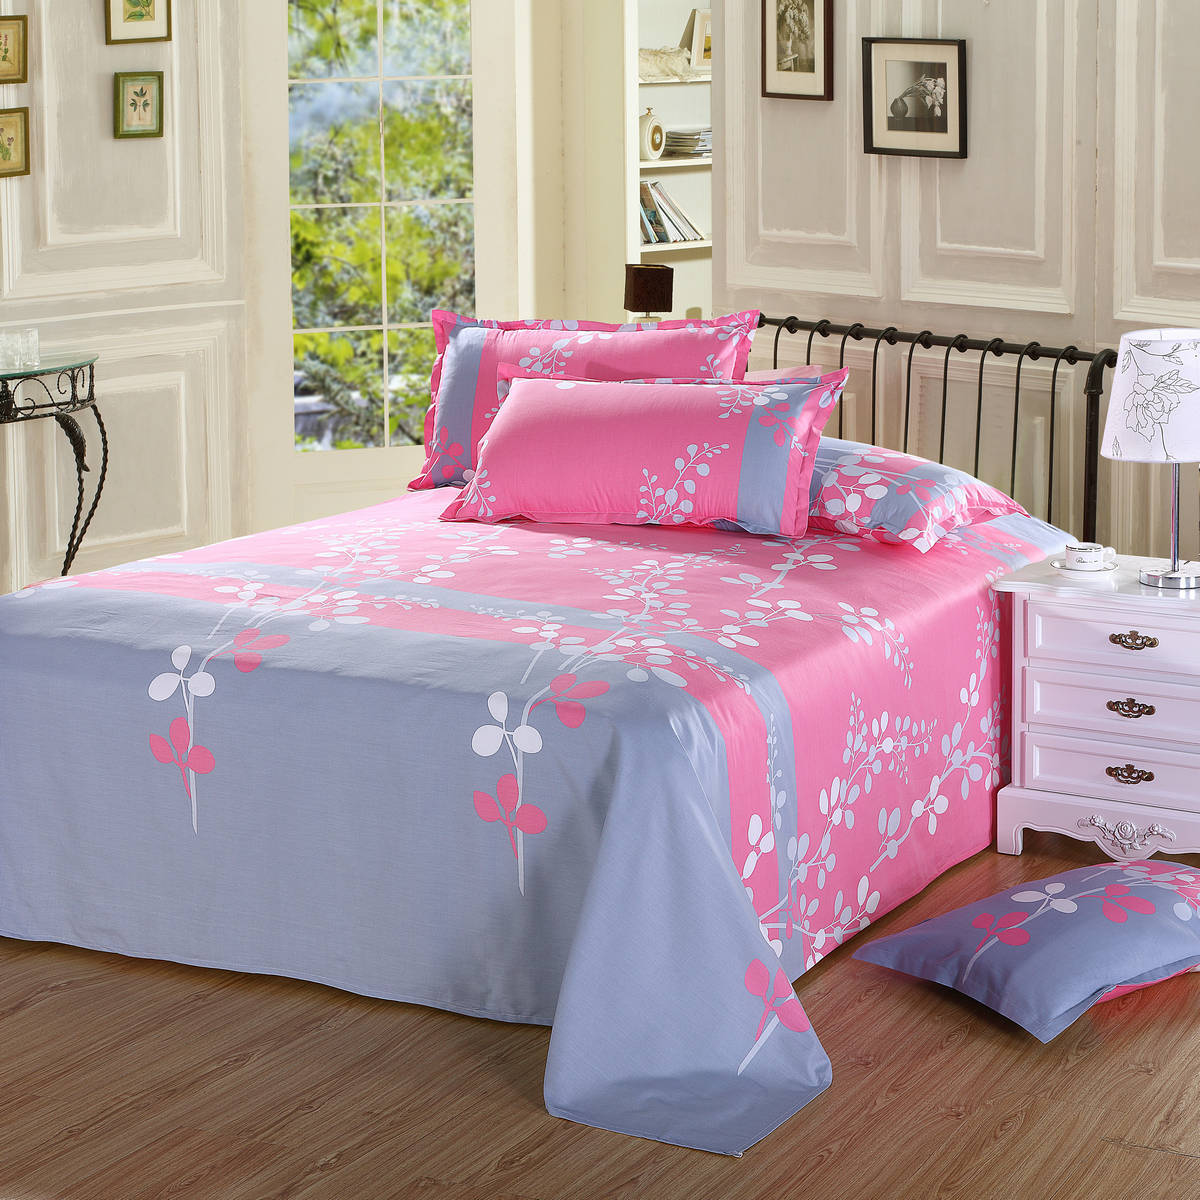 100% cotton pinting bed sheets for home